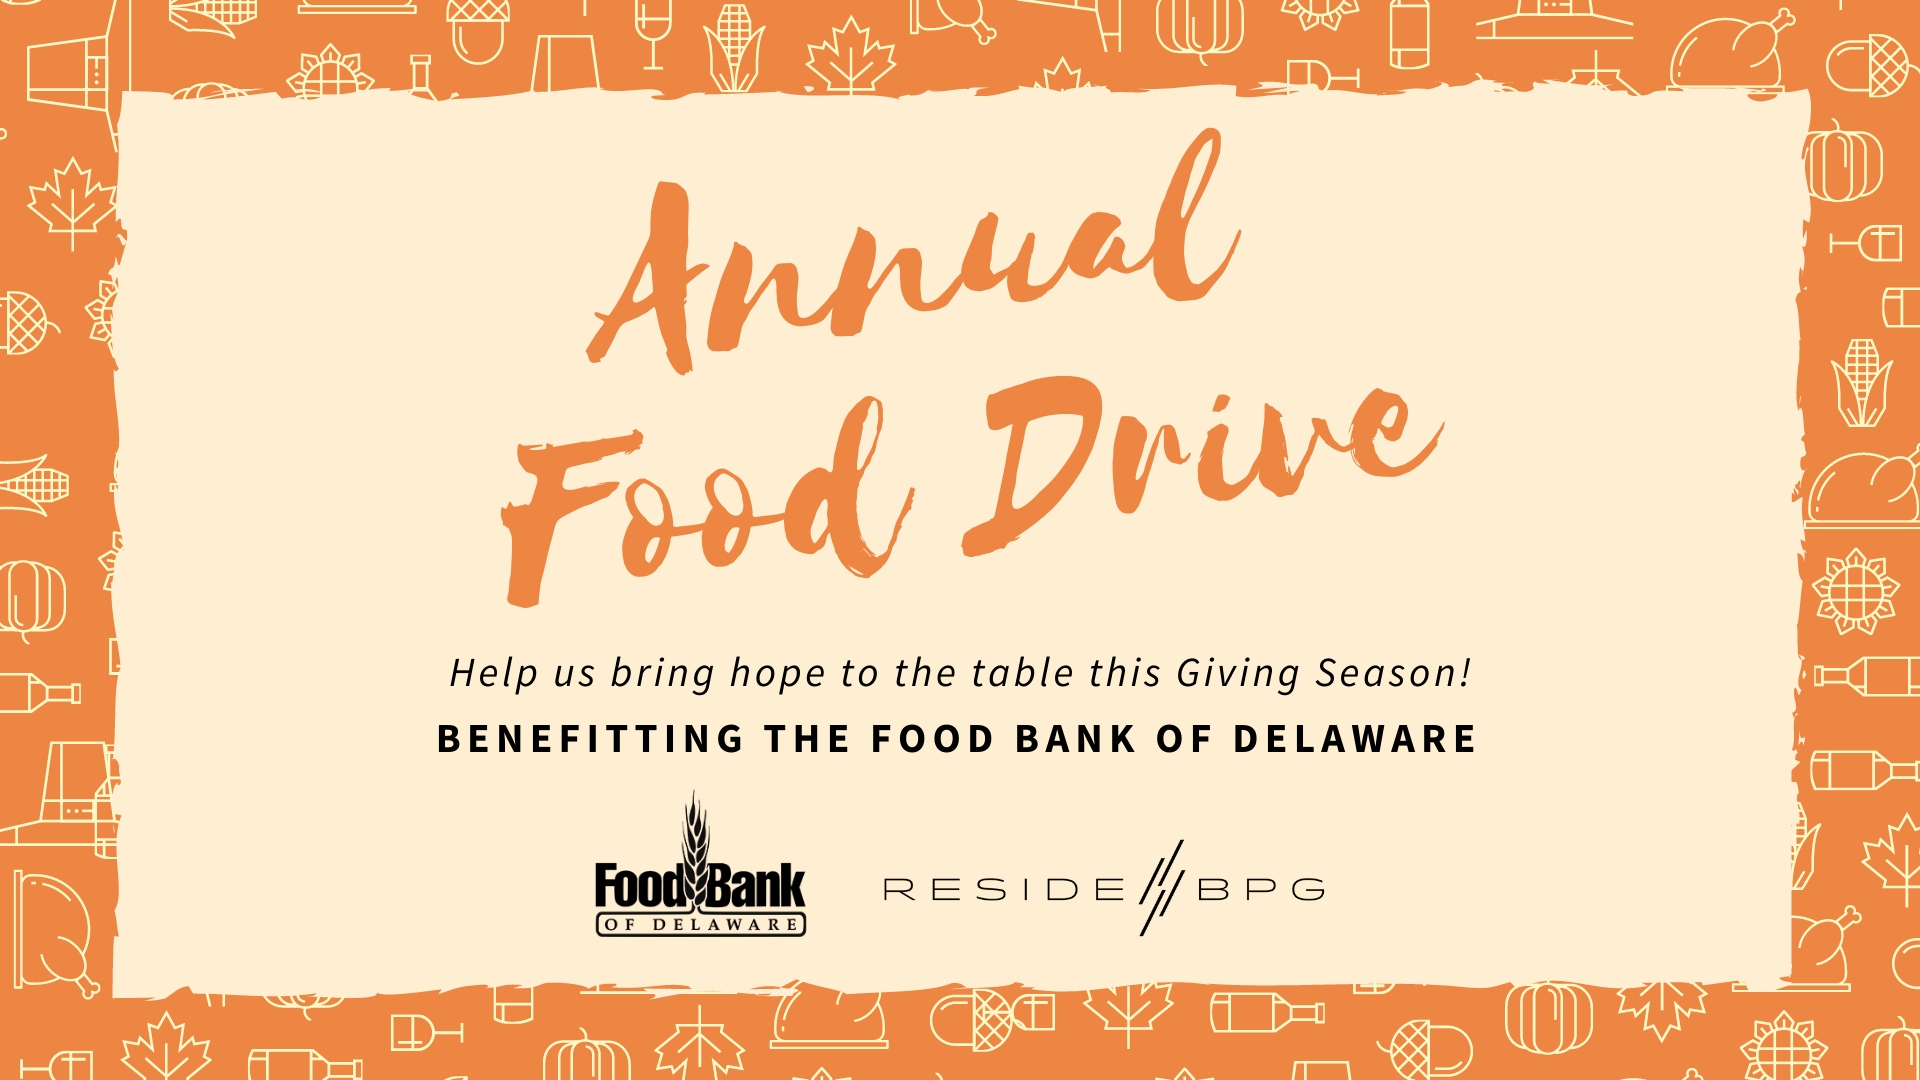 fooddrive2020_resi_blogheader